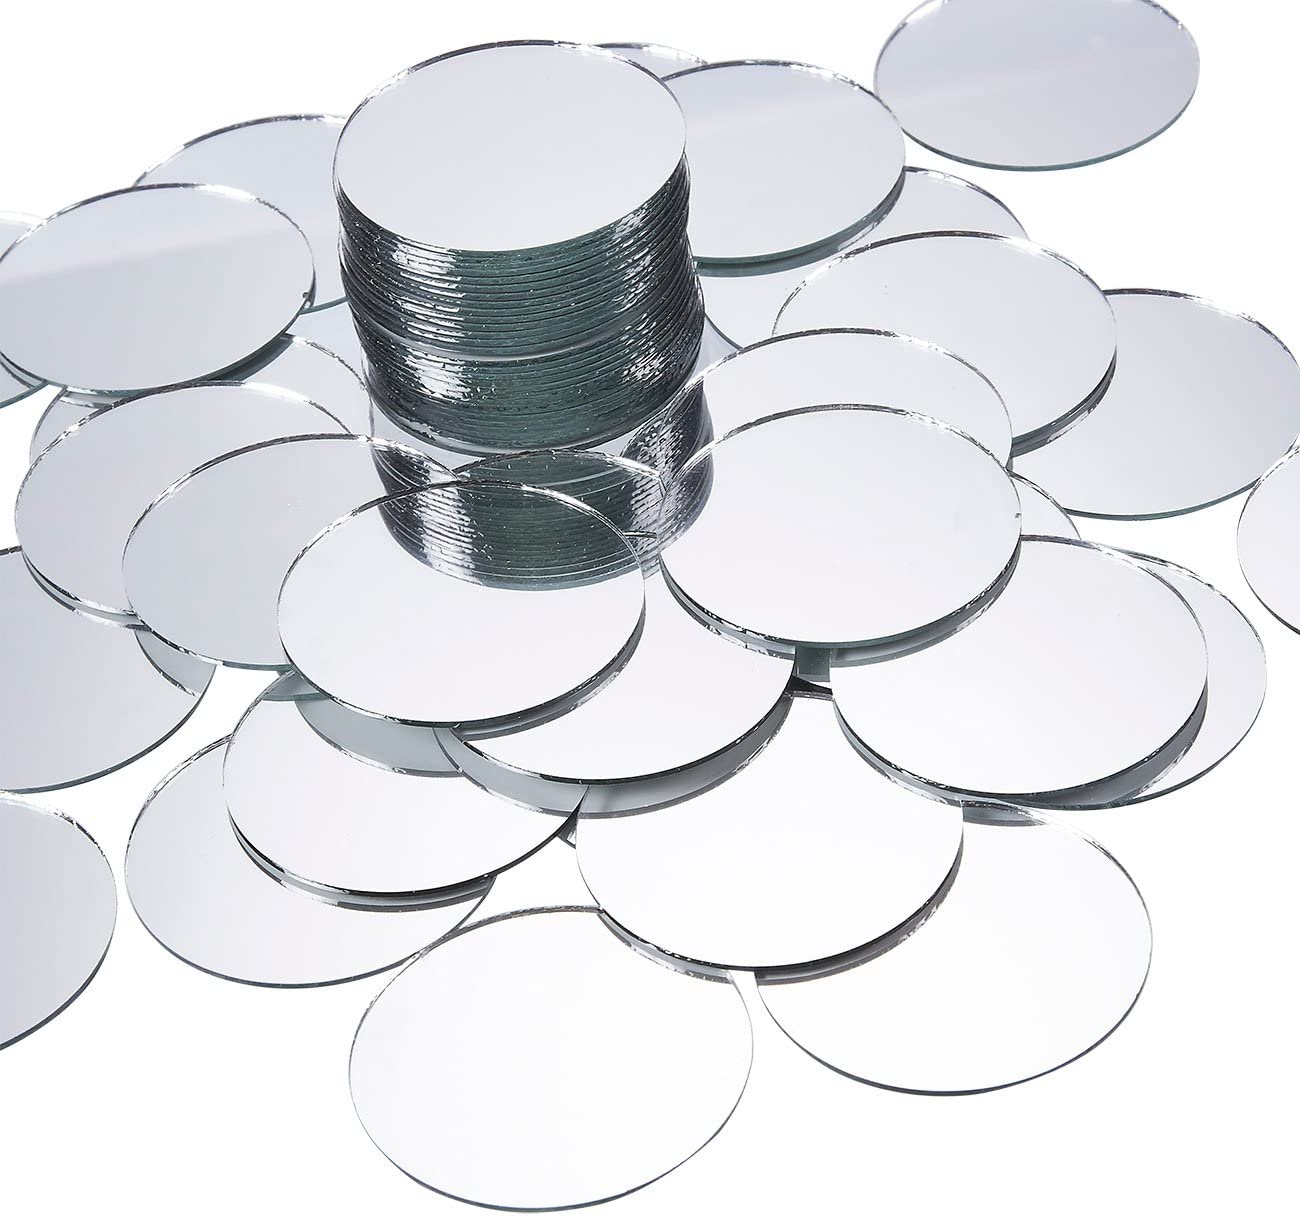 50 Pack 4 Inch Decorations Craft Round Mirror Tiles for Crafts